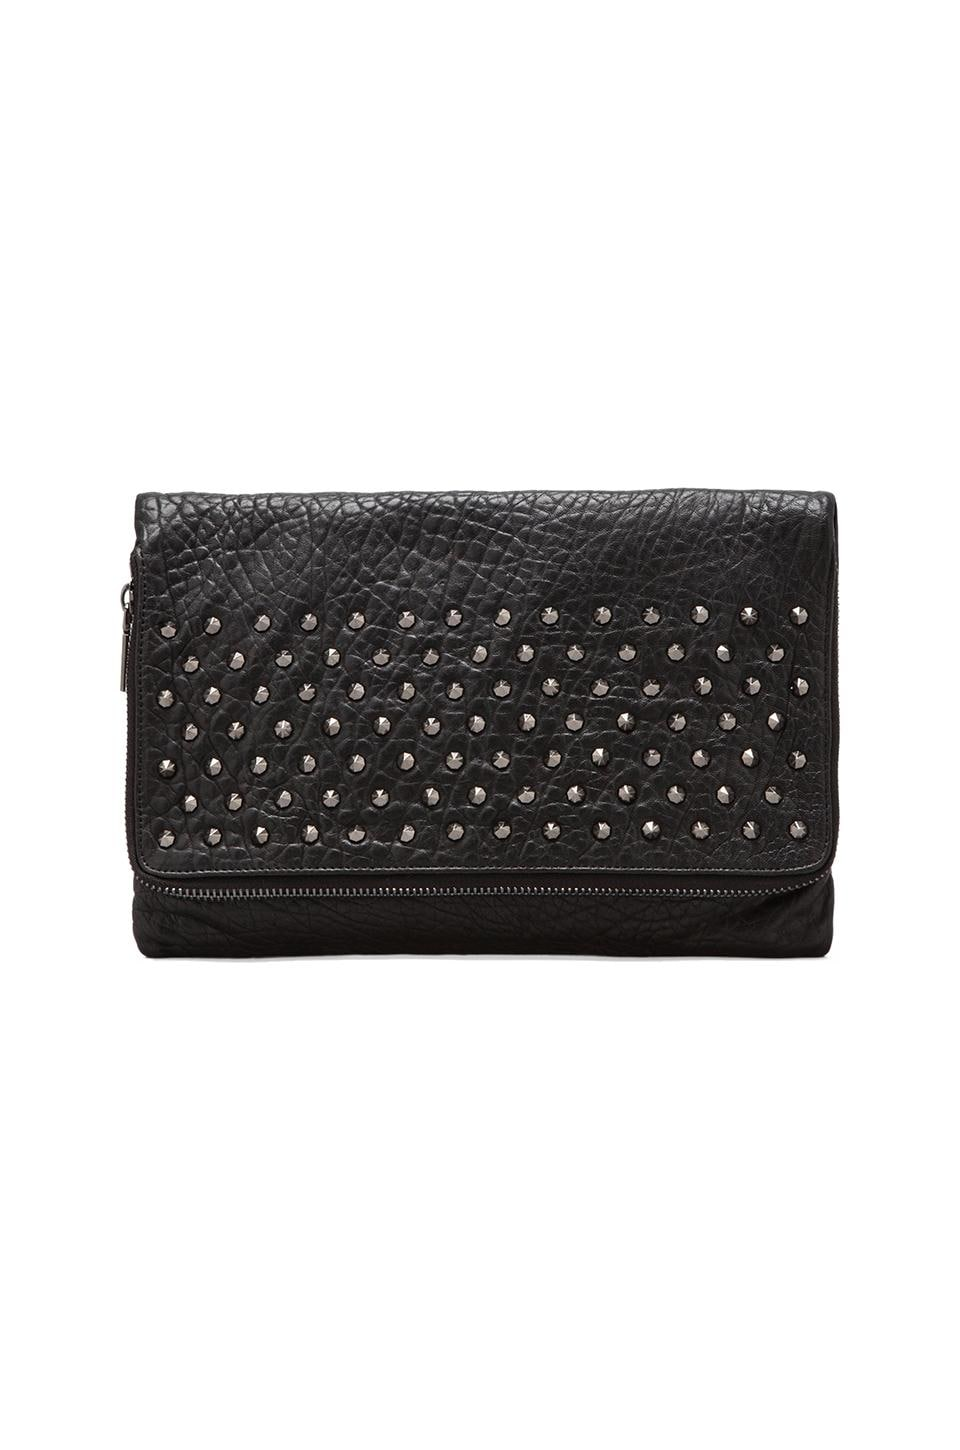 Yosi Samra Blair Studded Foldover Clutch in Black